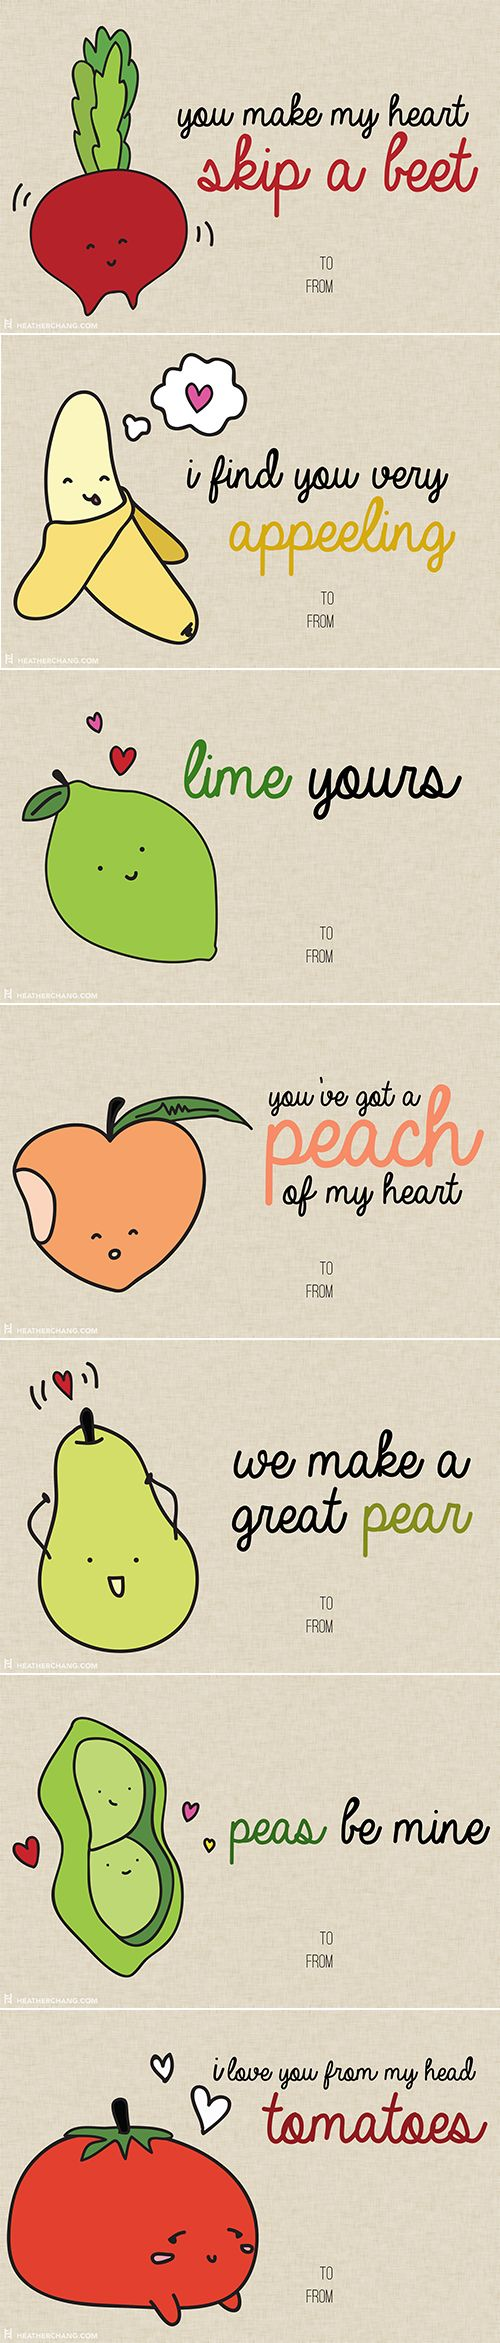 Printable V Day Cards With Food Puns So Bad Theyre Almost Good